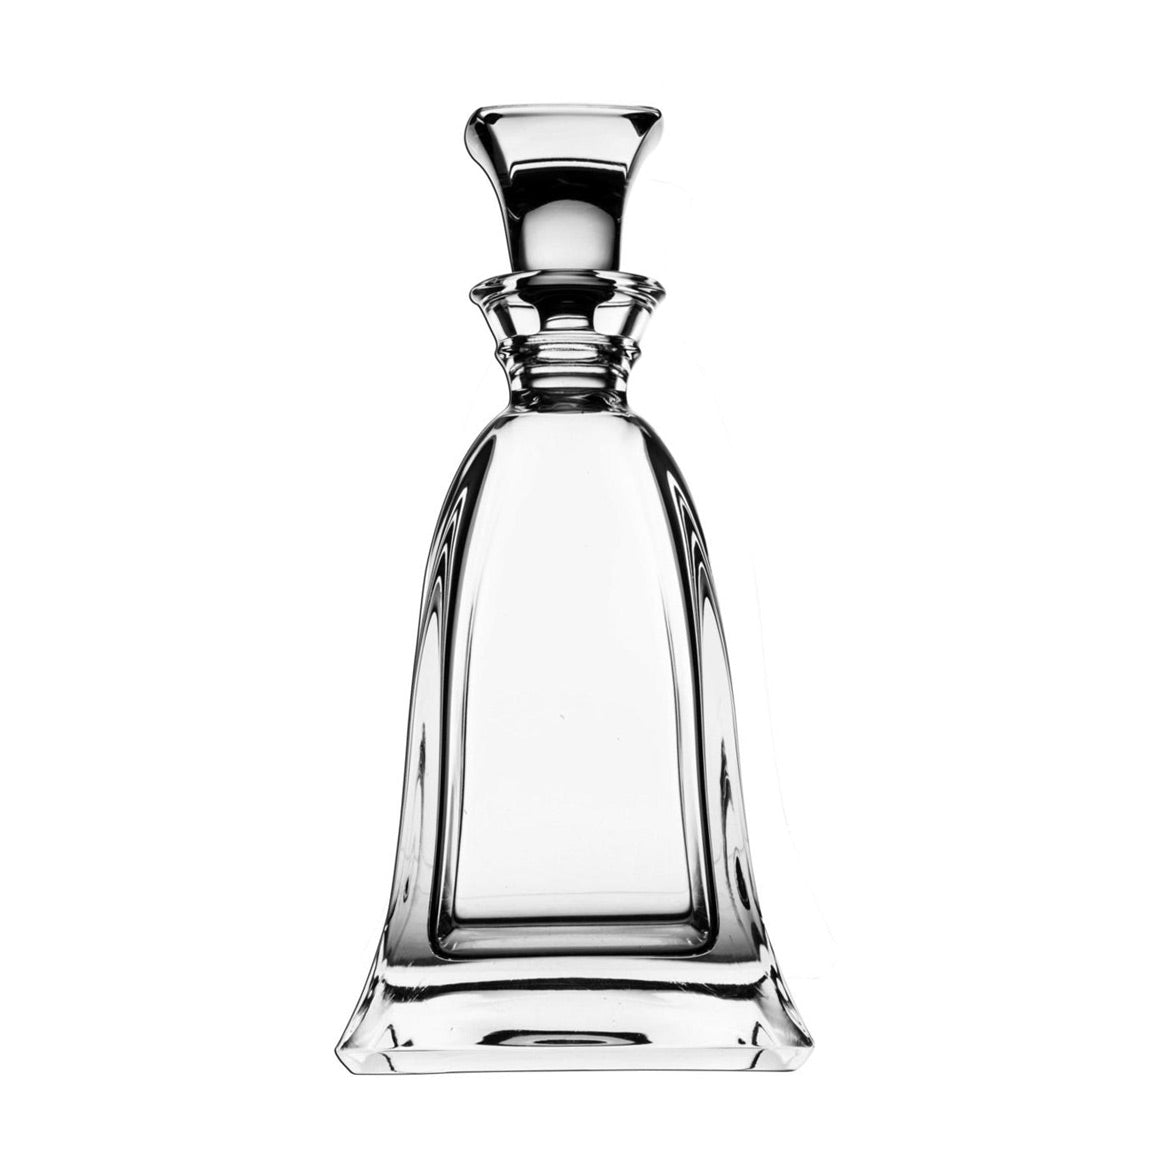 Tulip Liquor Decanter - The Crystal Wonderland